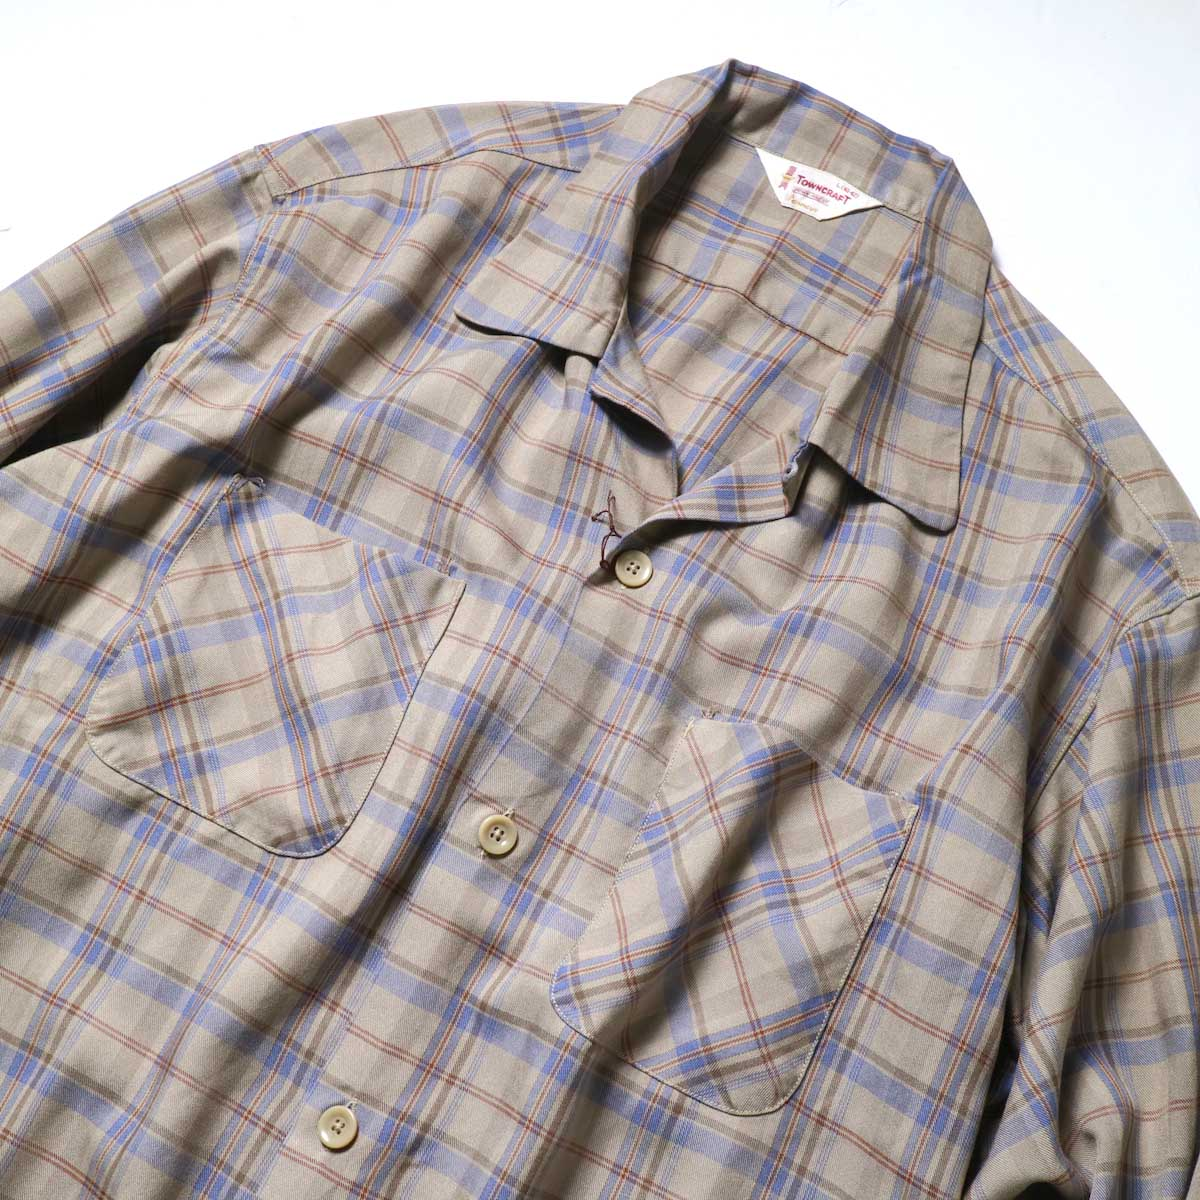 TOWN CRAFT / CLASSIC CHECK OPEN SHIRTS (Beige)オープンカラー